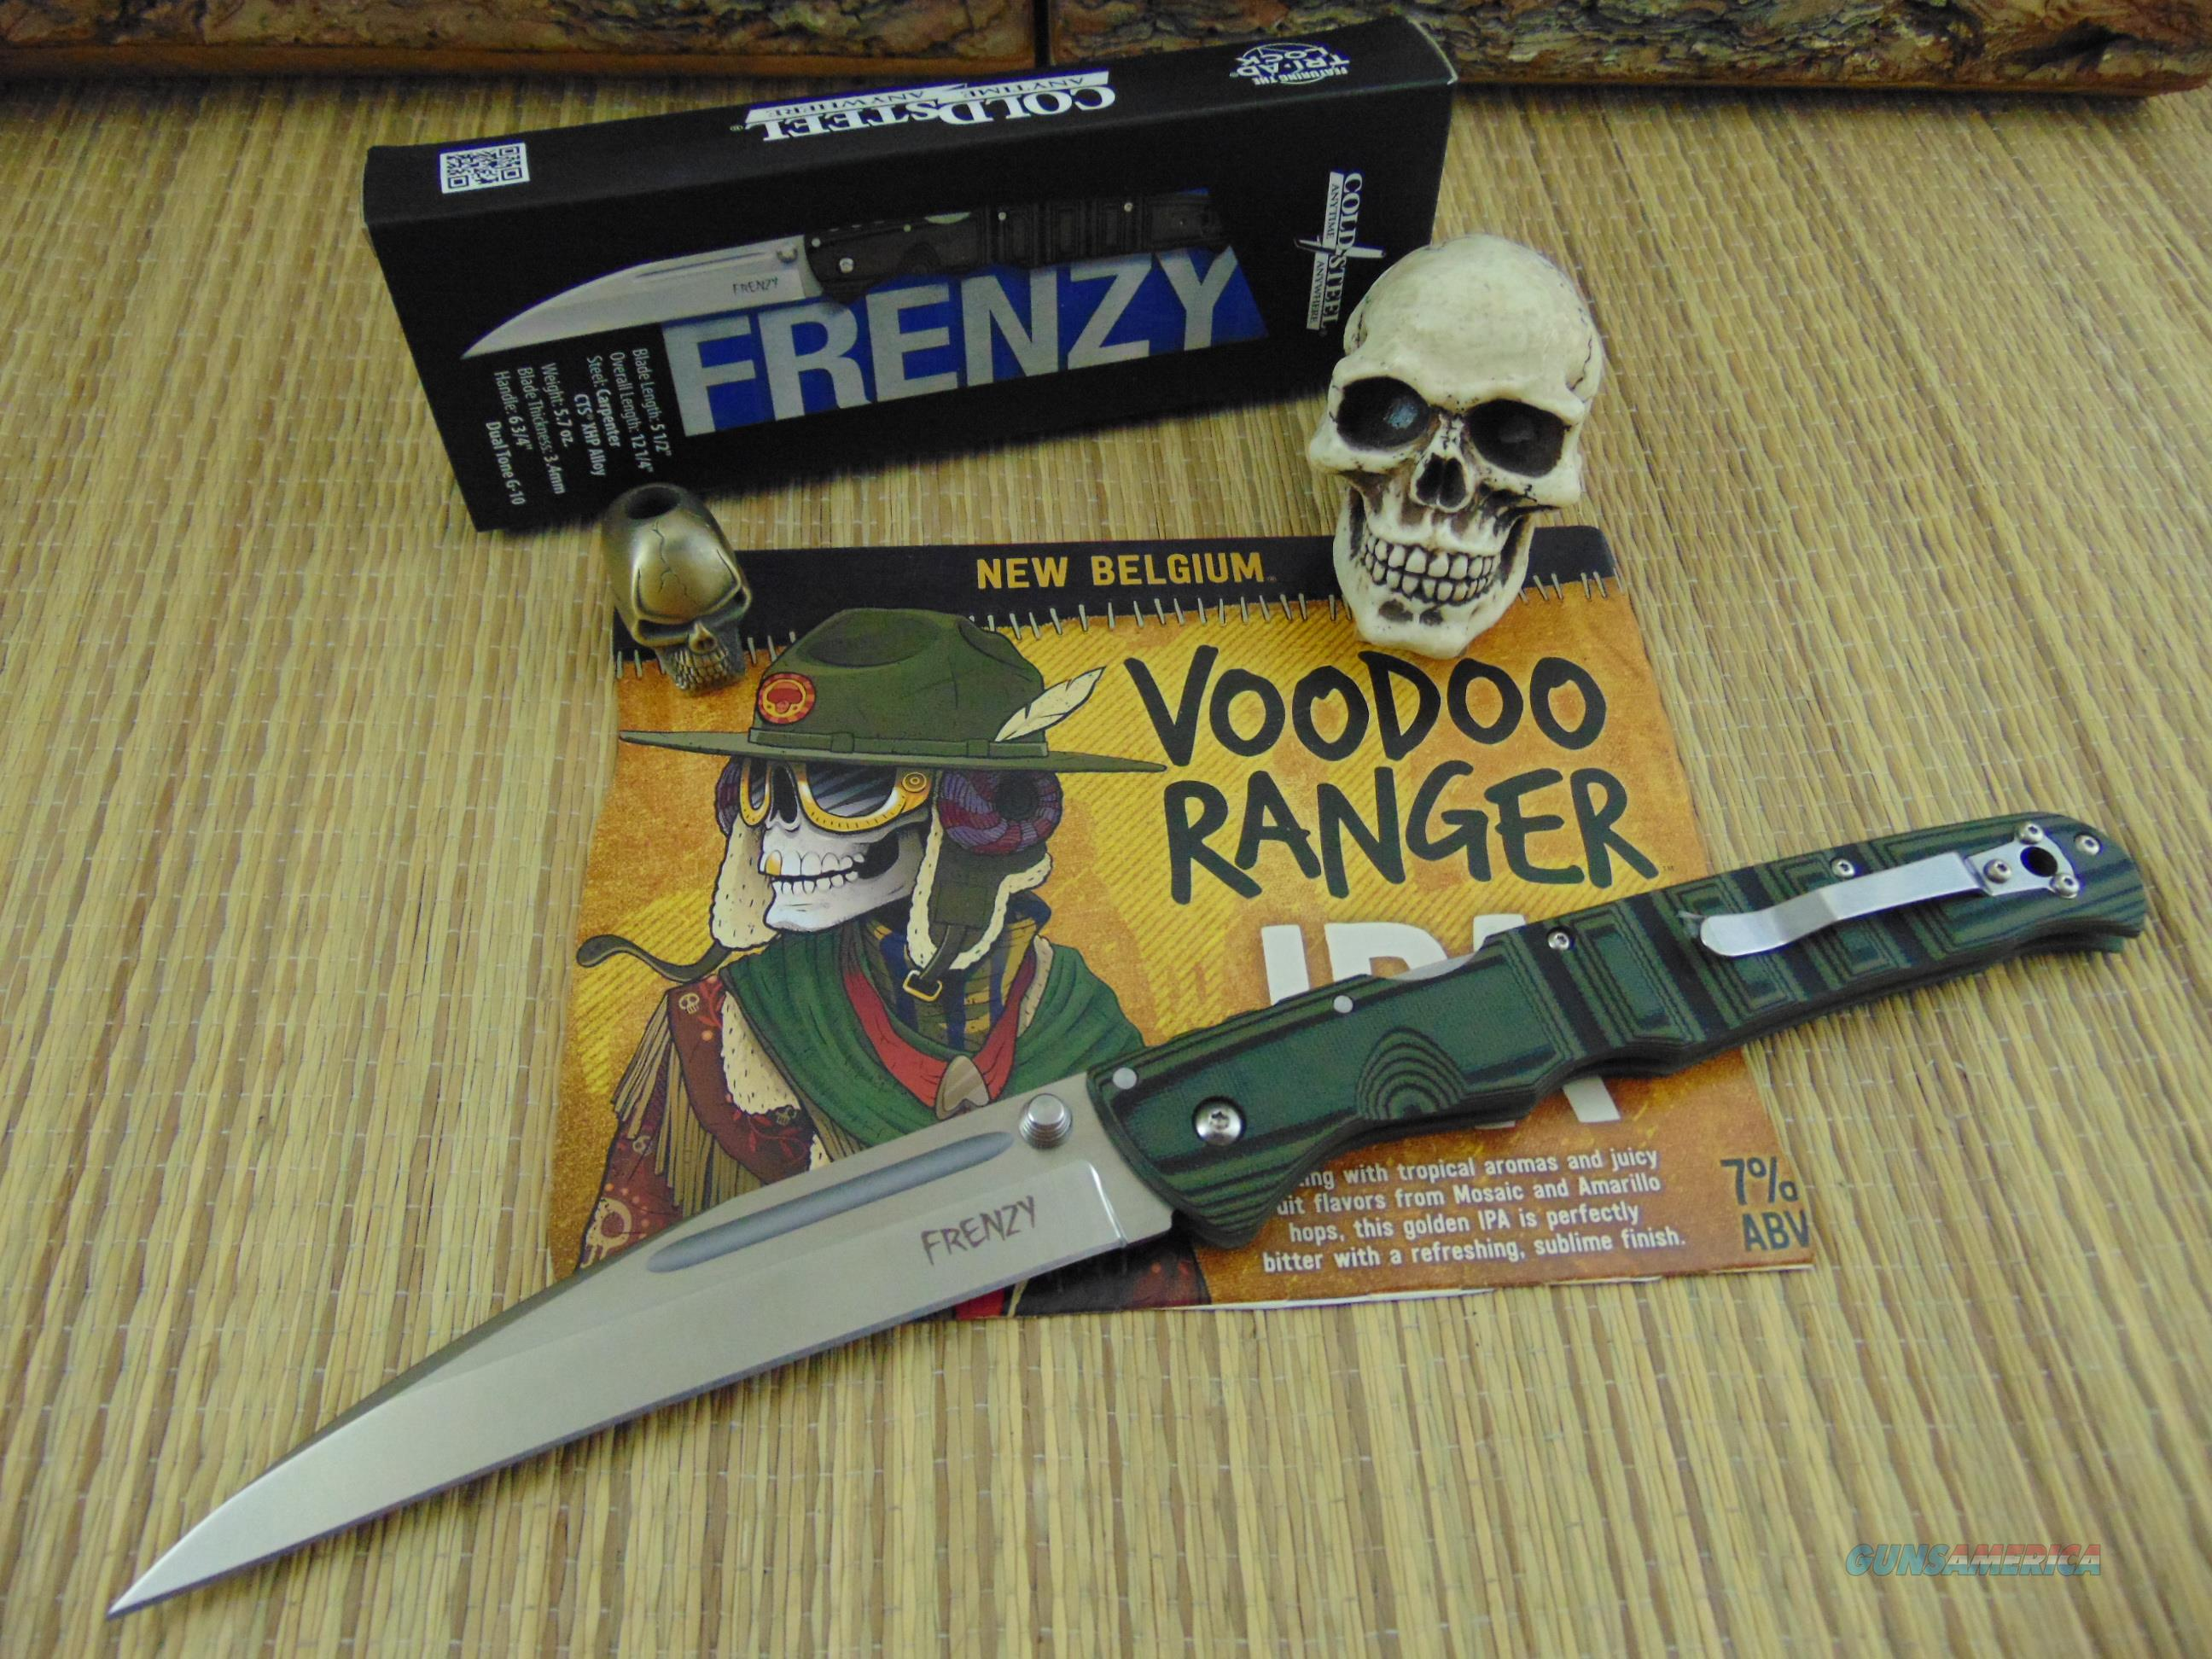 Cold Steel 62PV-1 Frenzy 1  Non-Guns > Knives/Swords > Knives > Folding Blade > Imported